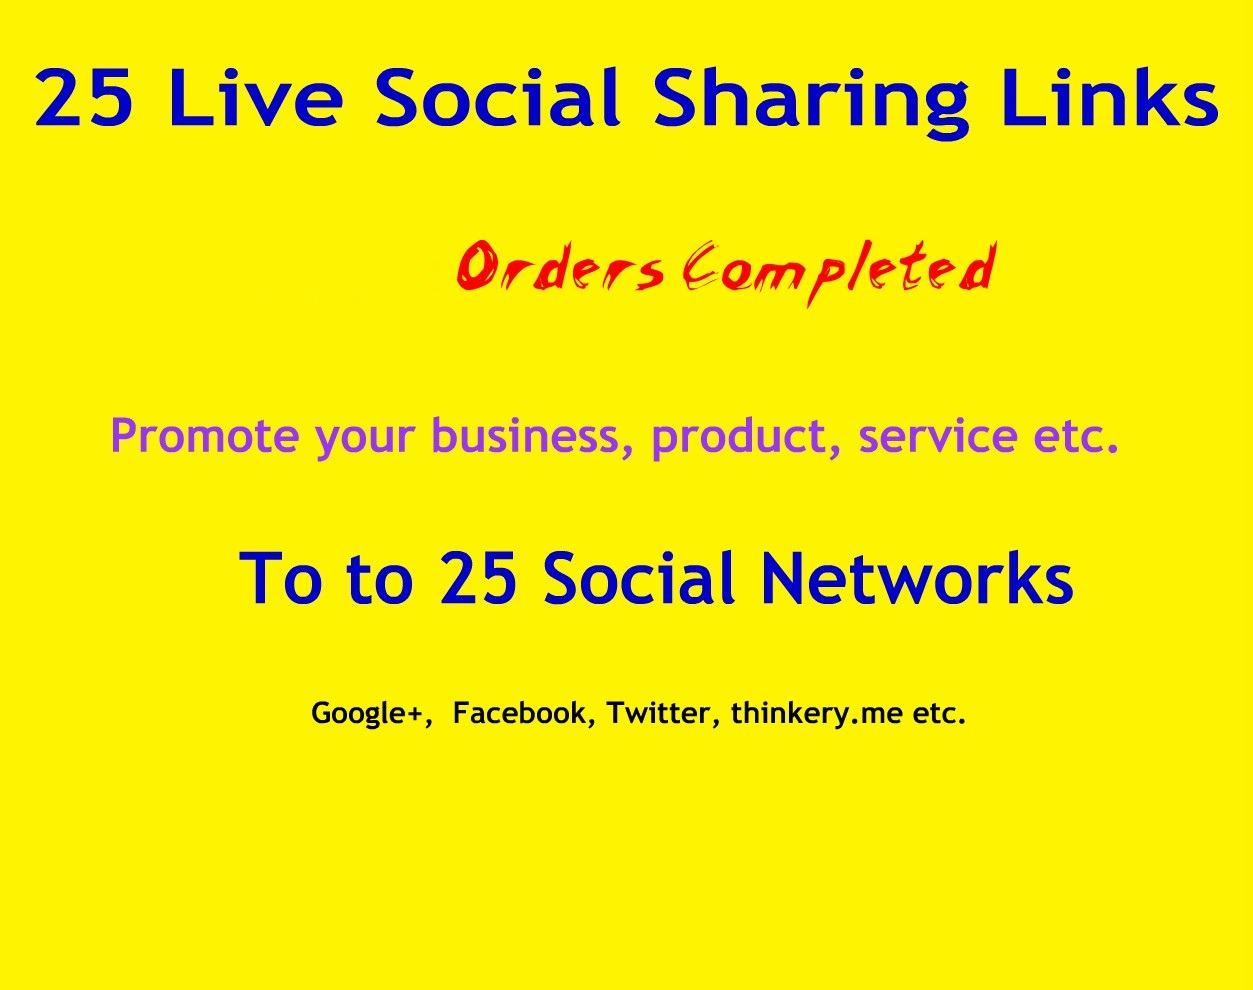 Instant manually 25 Live Social Bookmarking Links within 24 hours